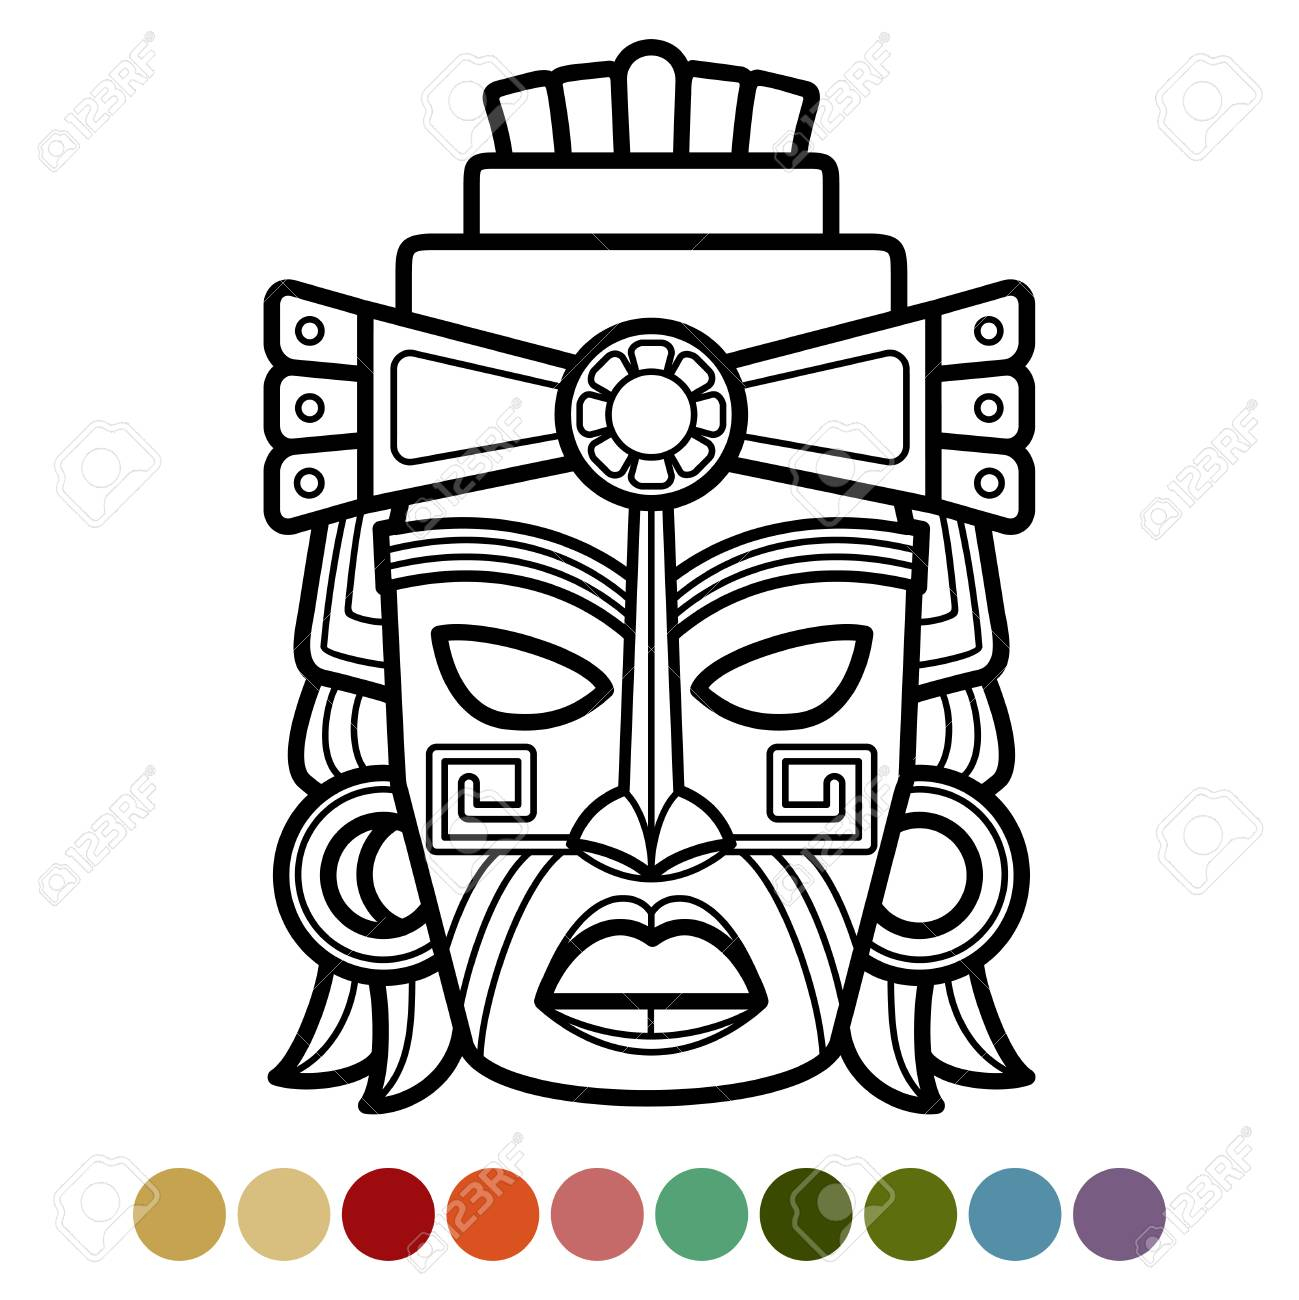 Mexican, African, Aztec Mask Coloring Page throughout Aztec Mask Template